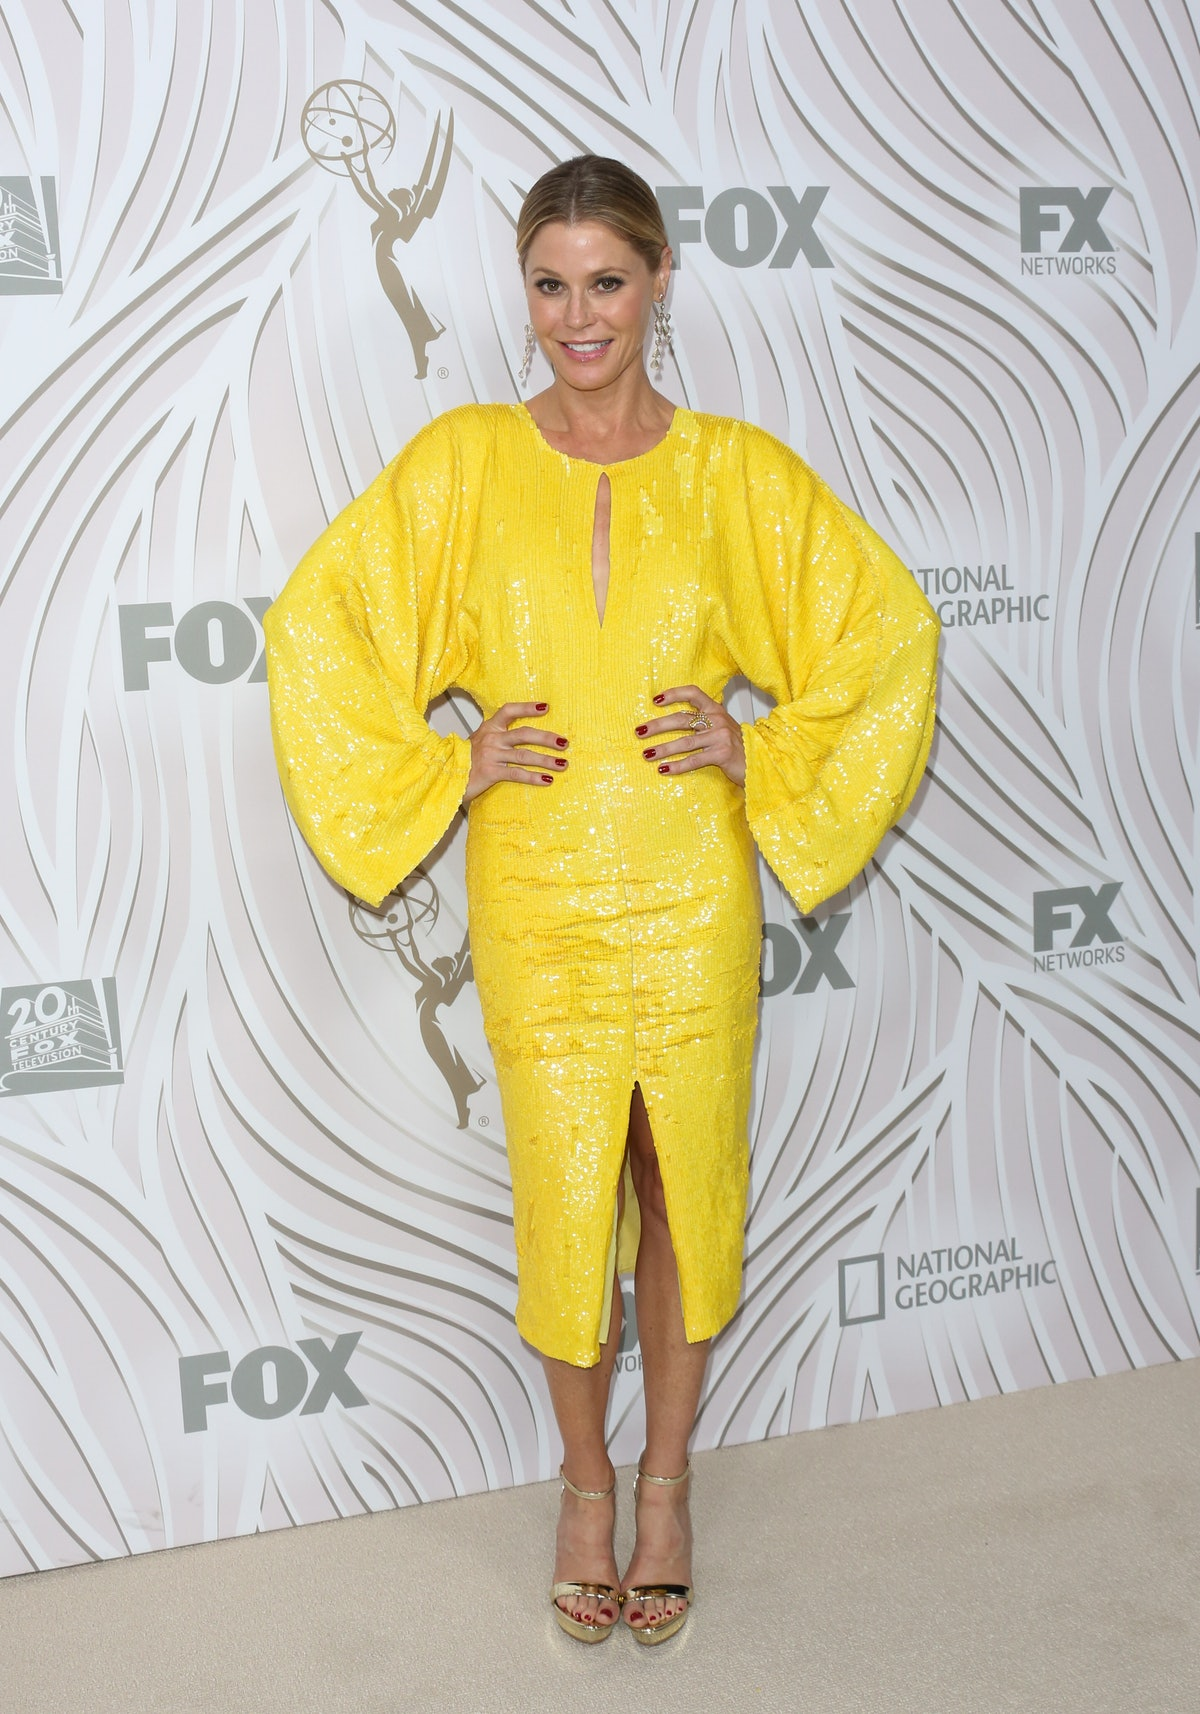 FOX Broadcasting Company, Twentieth Century Fox Television, FX And National Geographic 69th Primetime Emmy Awards After Party - Arrivals